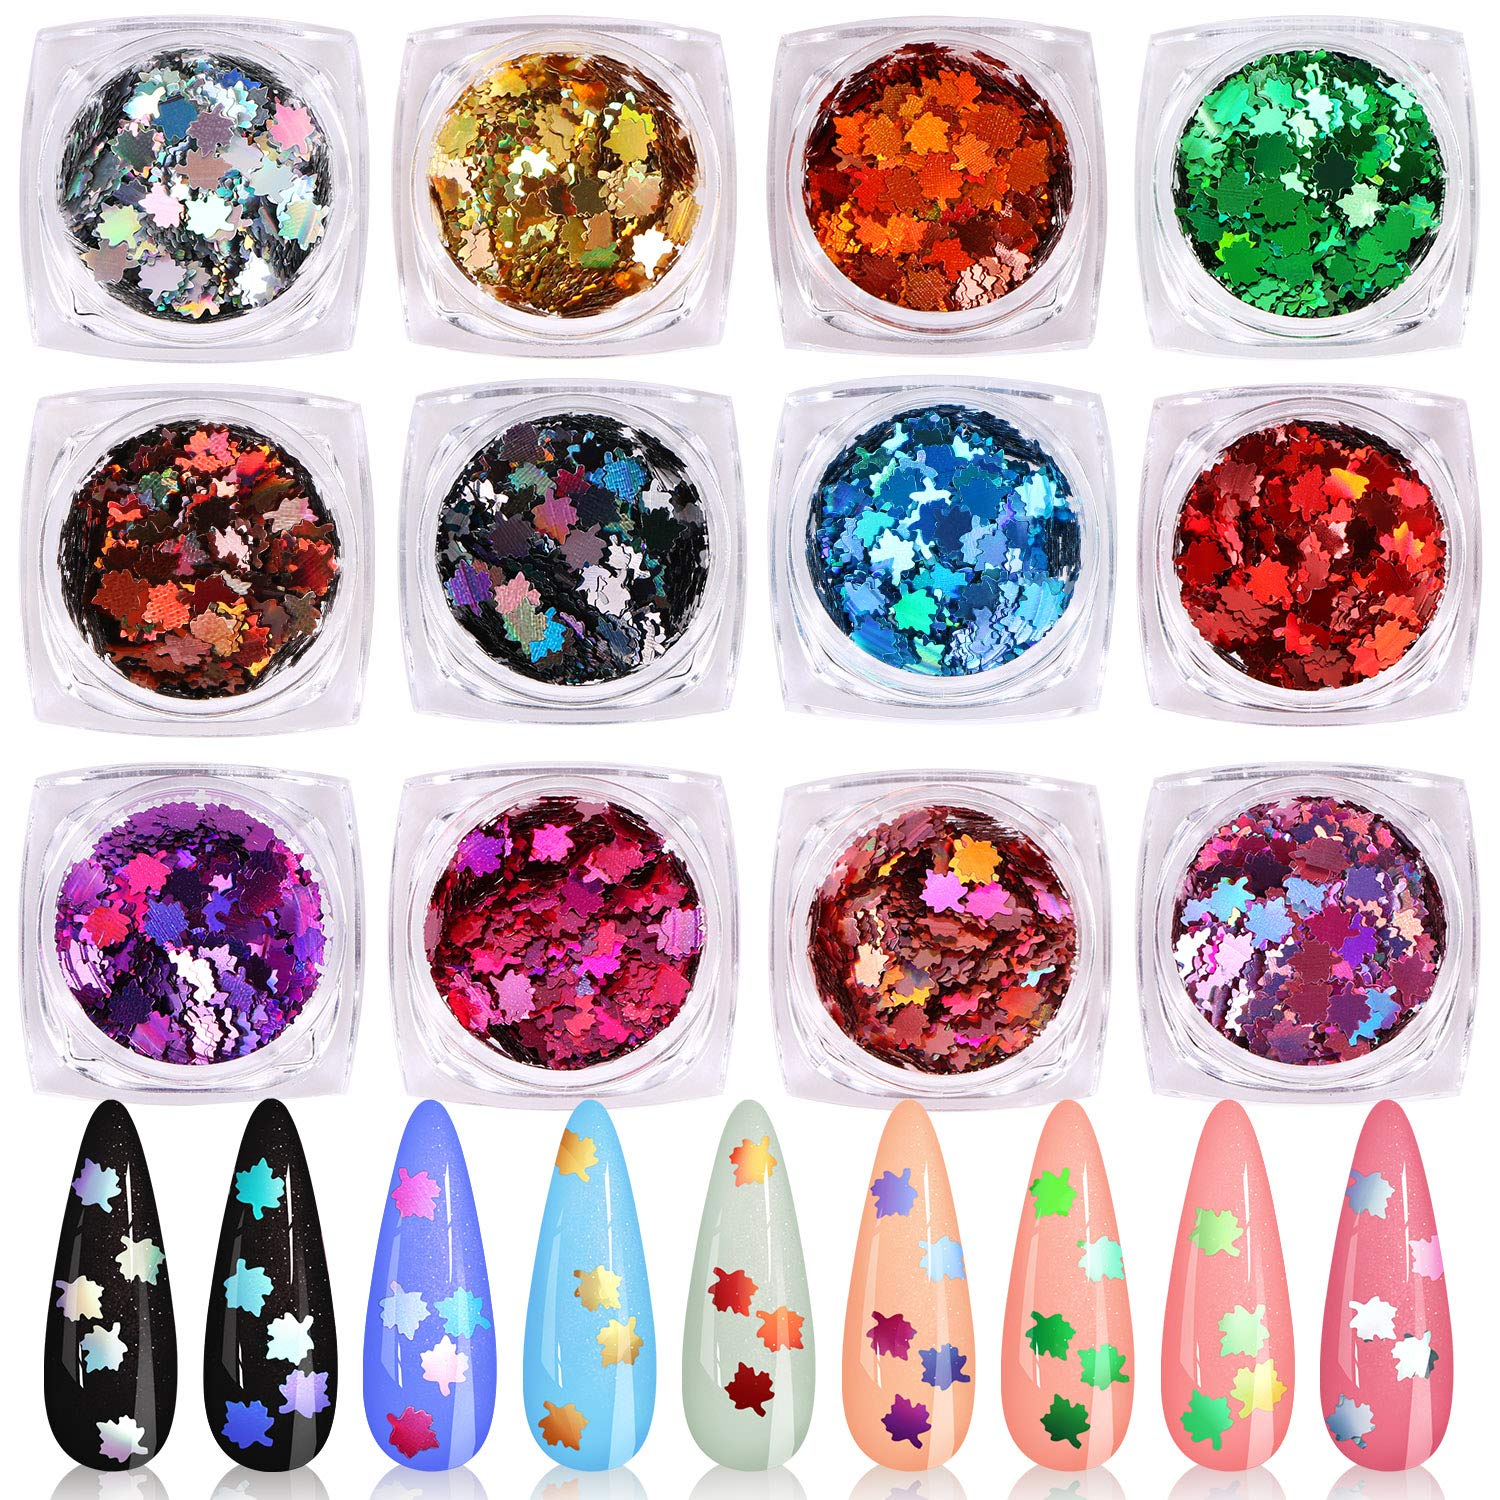 KISSBUTY 12 Boxes Colored Maple Leaf Sequins Holographic Nails Art Glitters Thin Paillette Flakes Nail Stickers Colorful Confetti Sticker Fall Autumn Nail Art Supplies Christmas Nail Decals Manicure